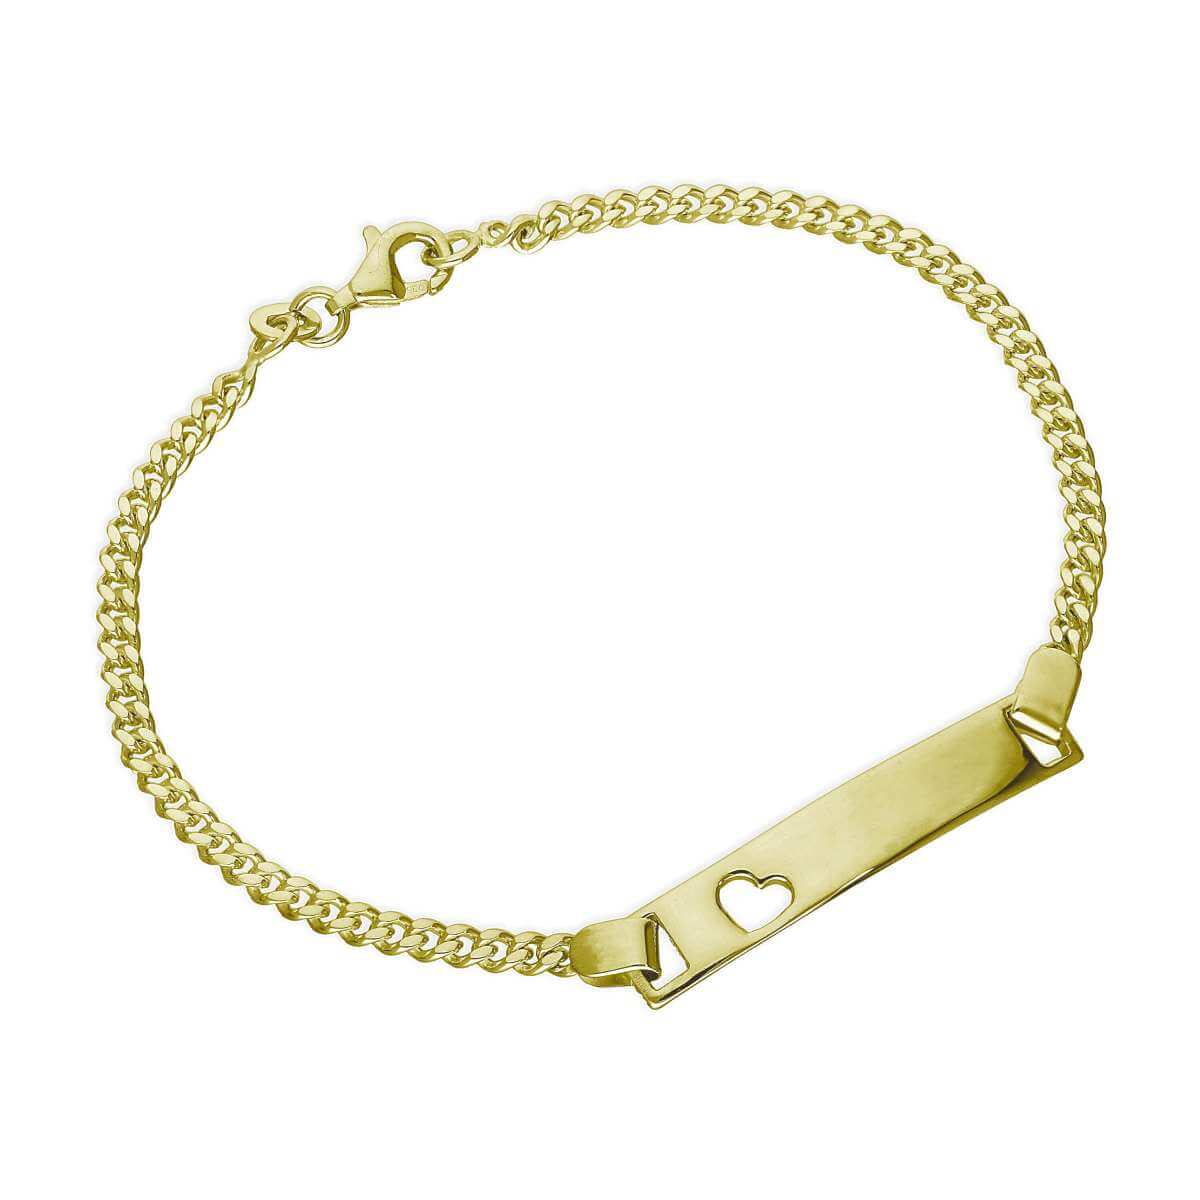 Gold Plated Sterling Silver Engravable ID Bracelet 6 Inches